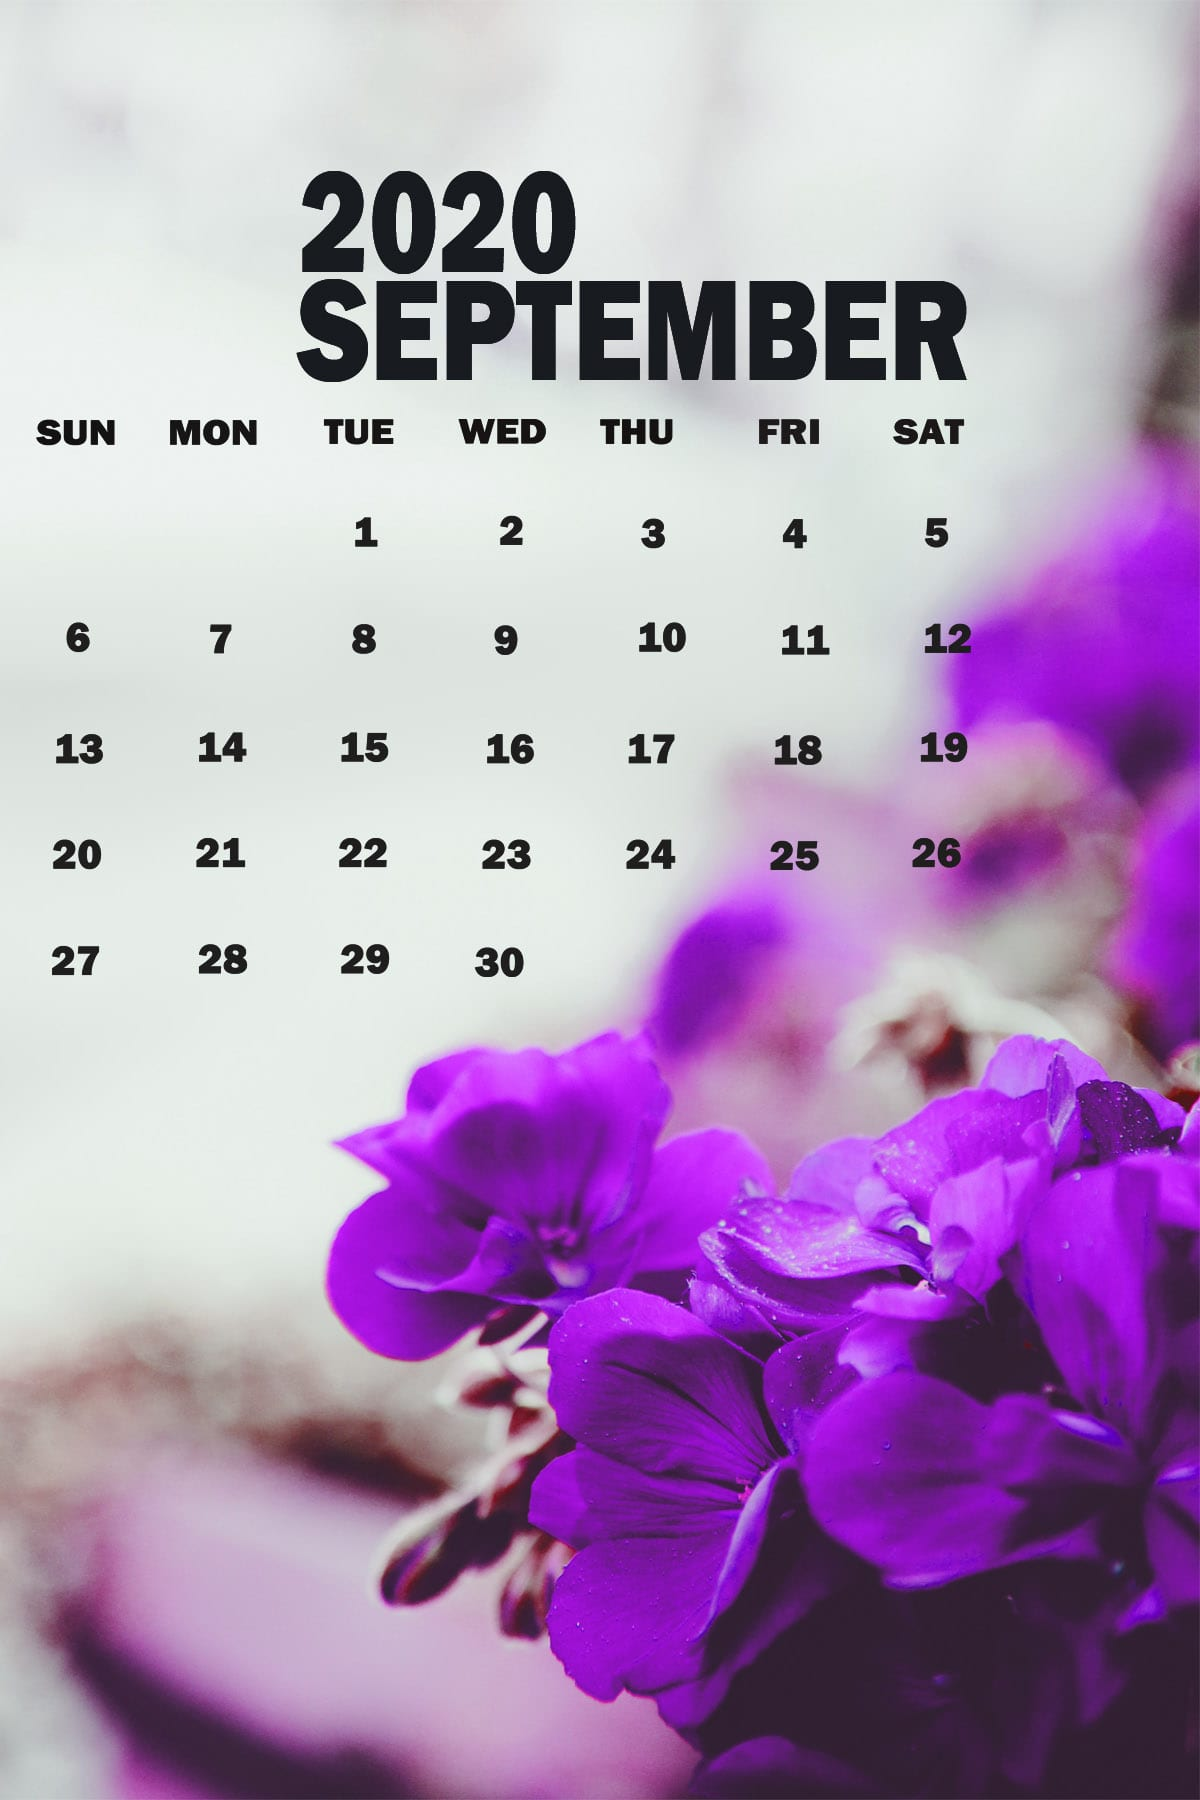 2020 September Wallpapers Kolpaper Awesome Free Hd Wallpapers